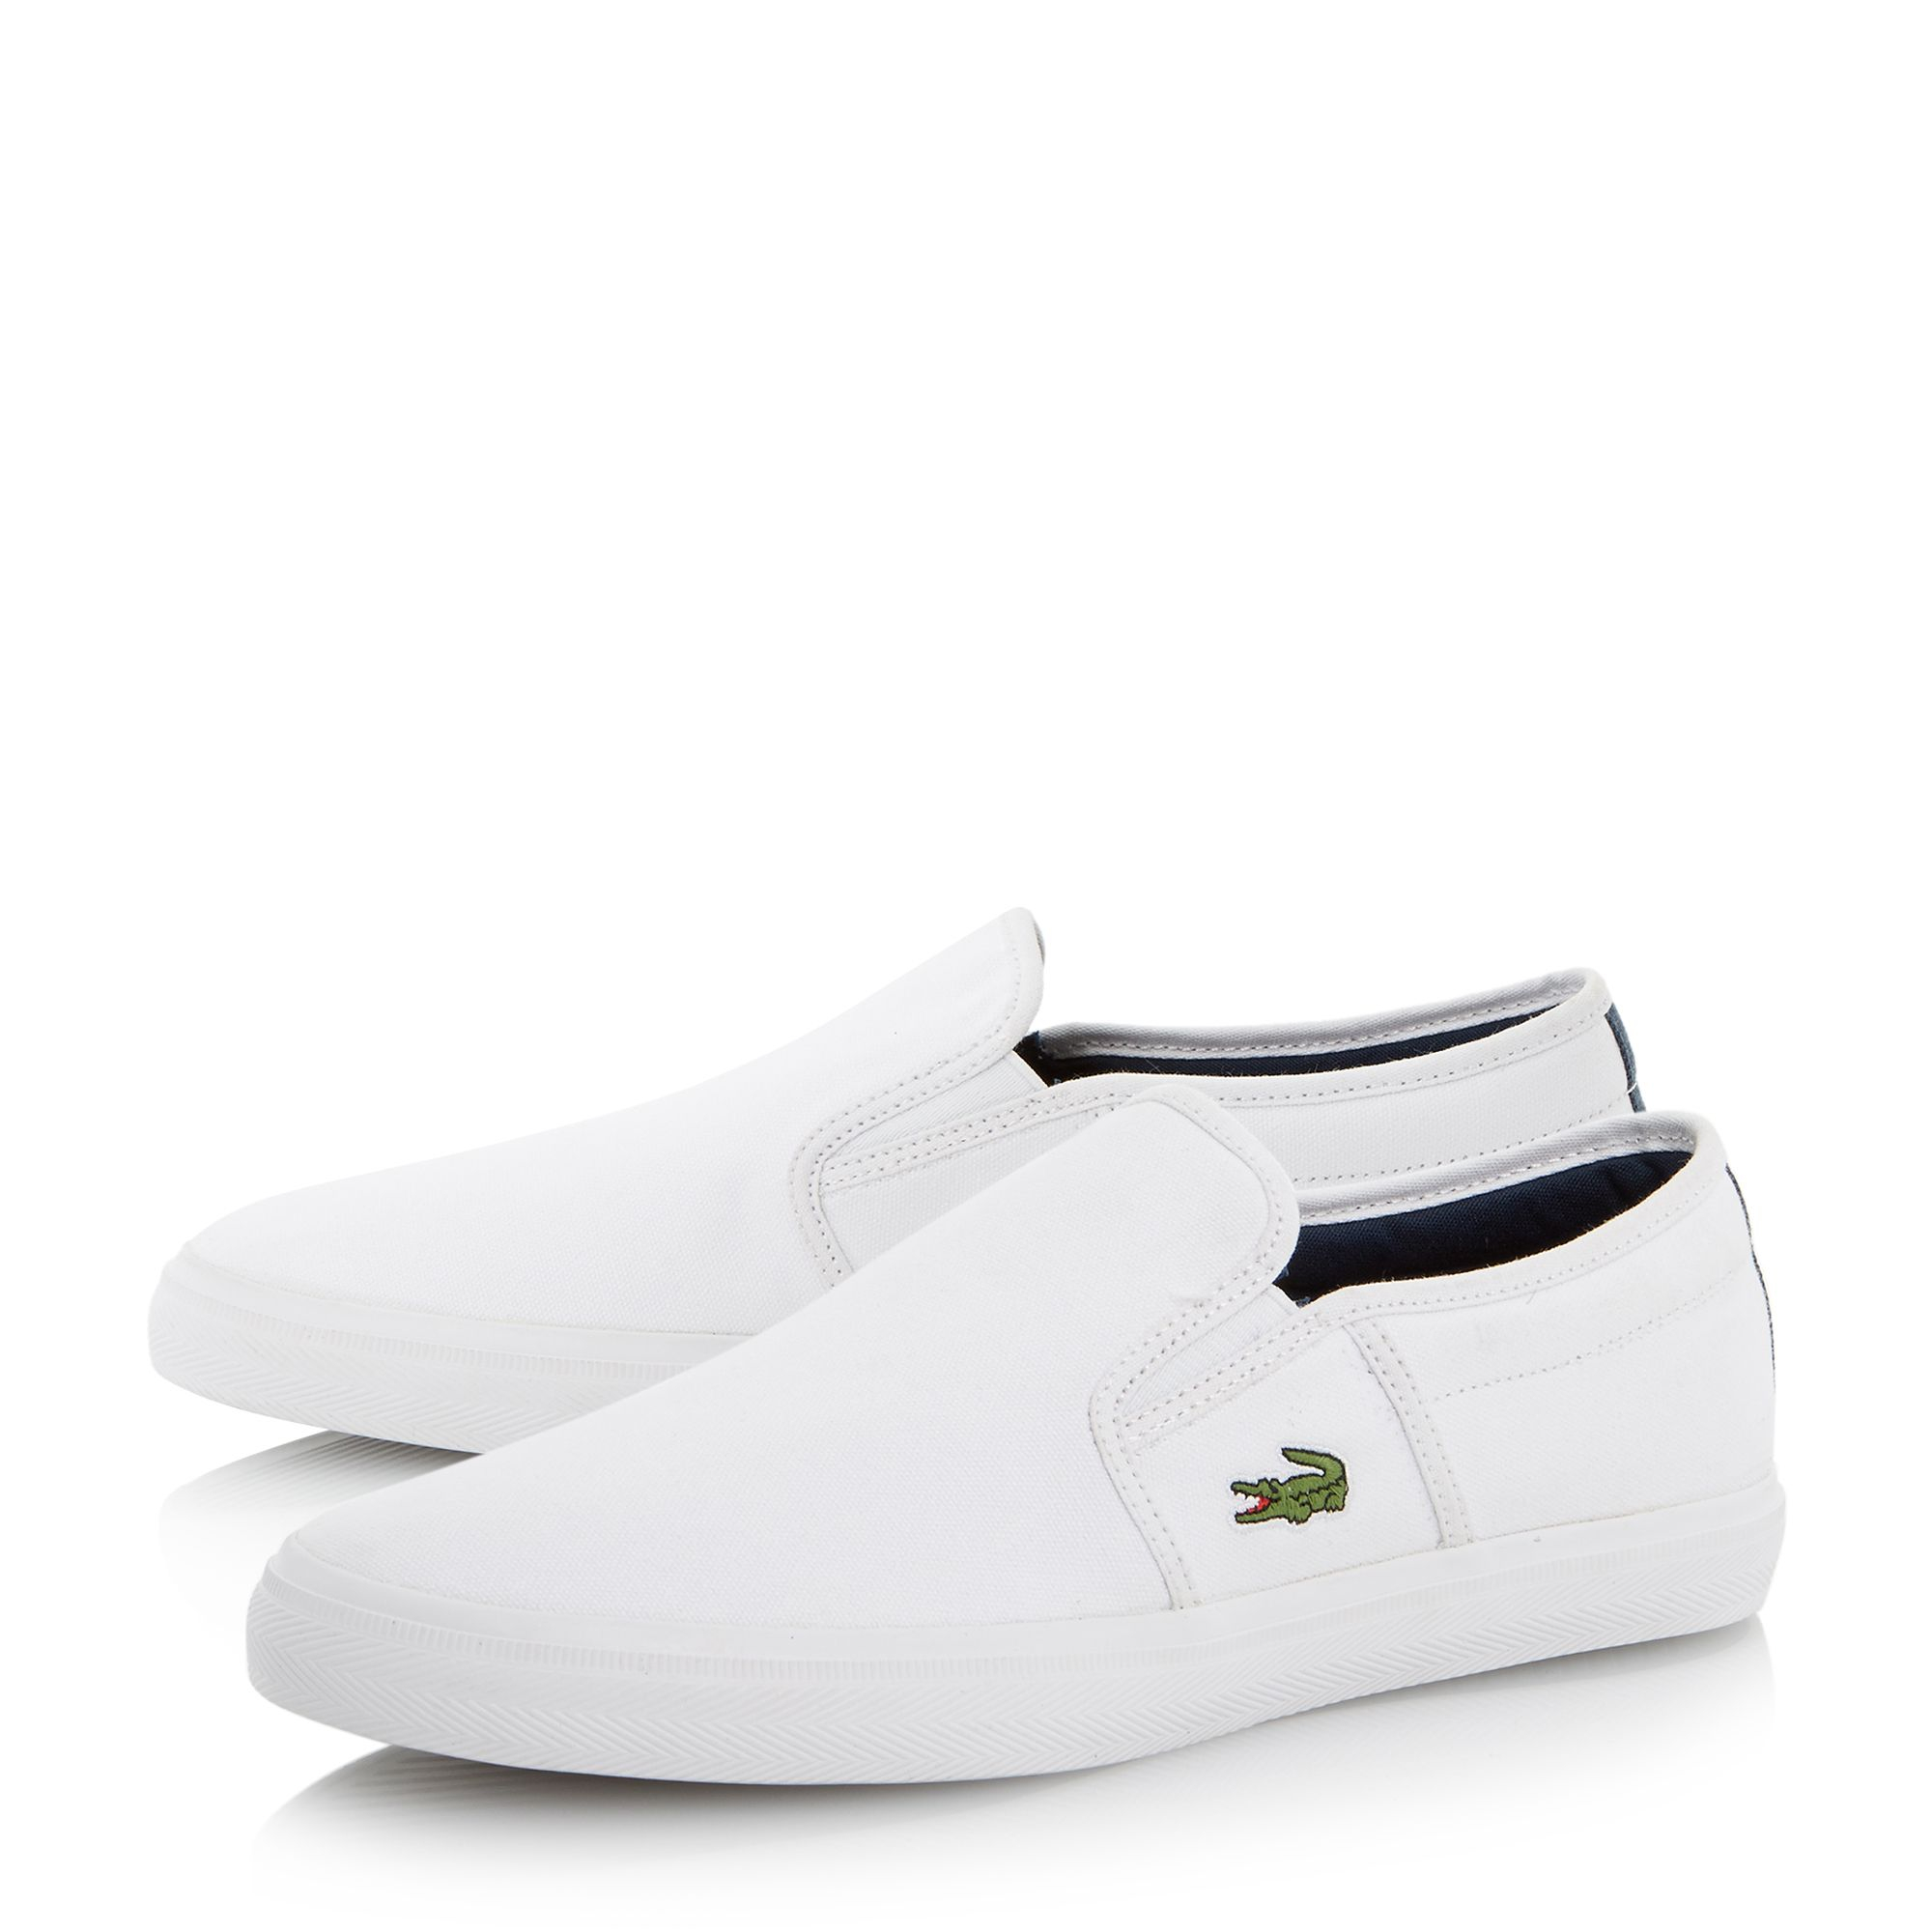 White Lacoste Shoes For Men